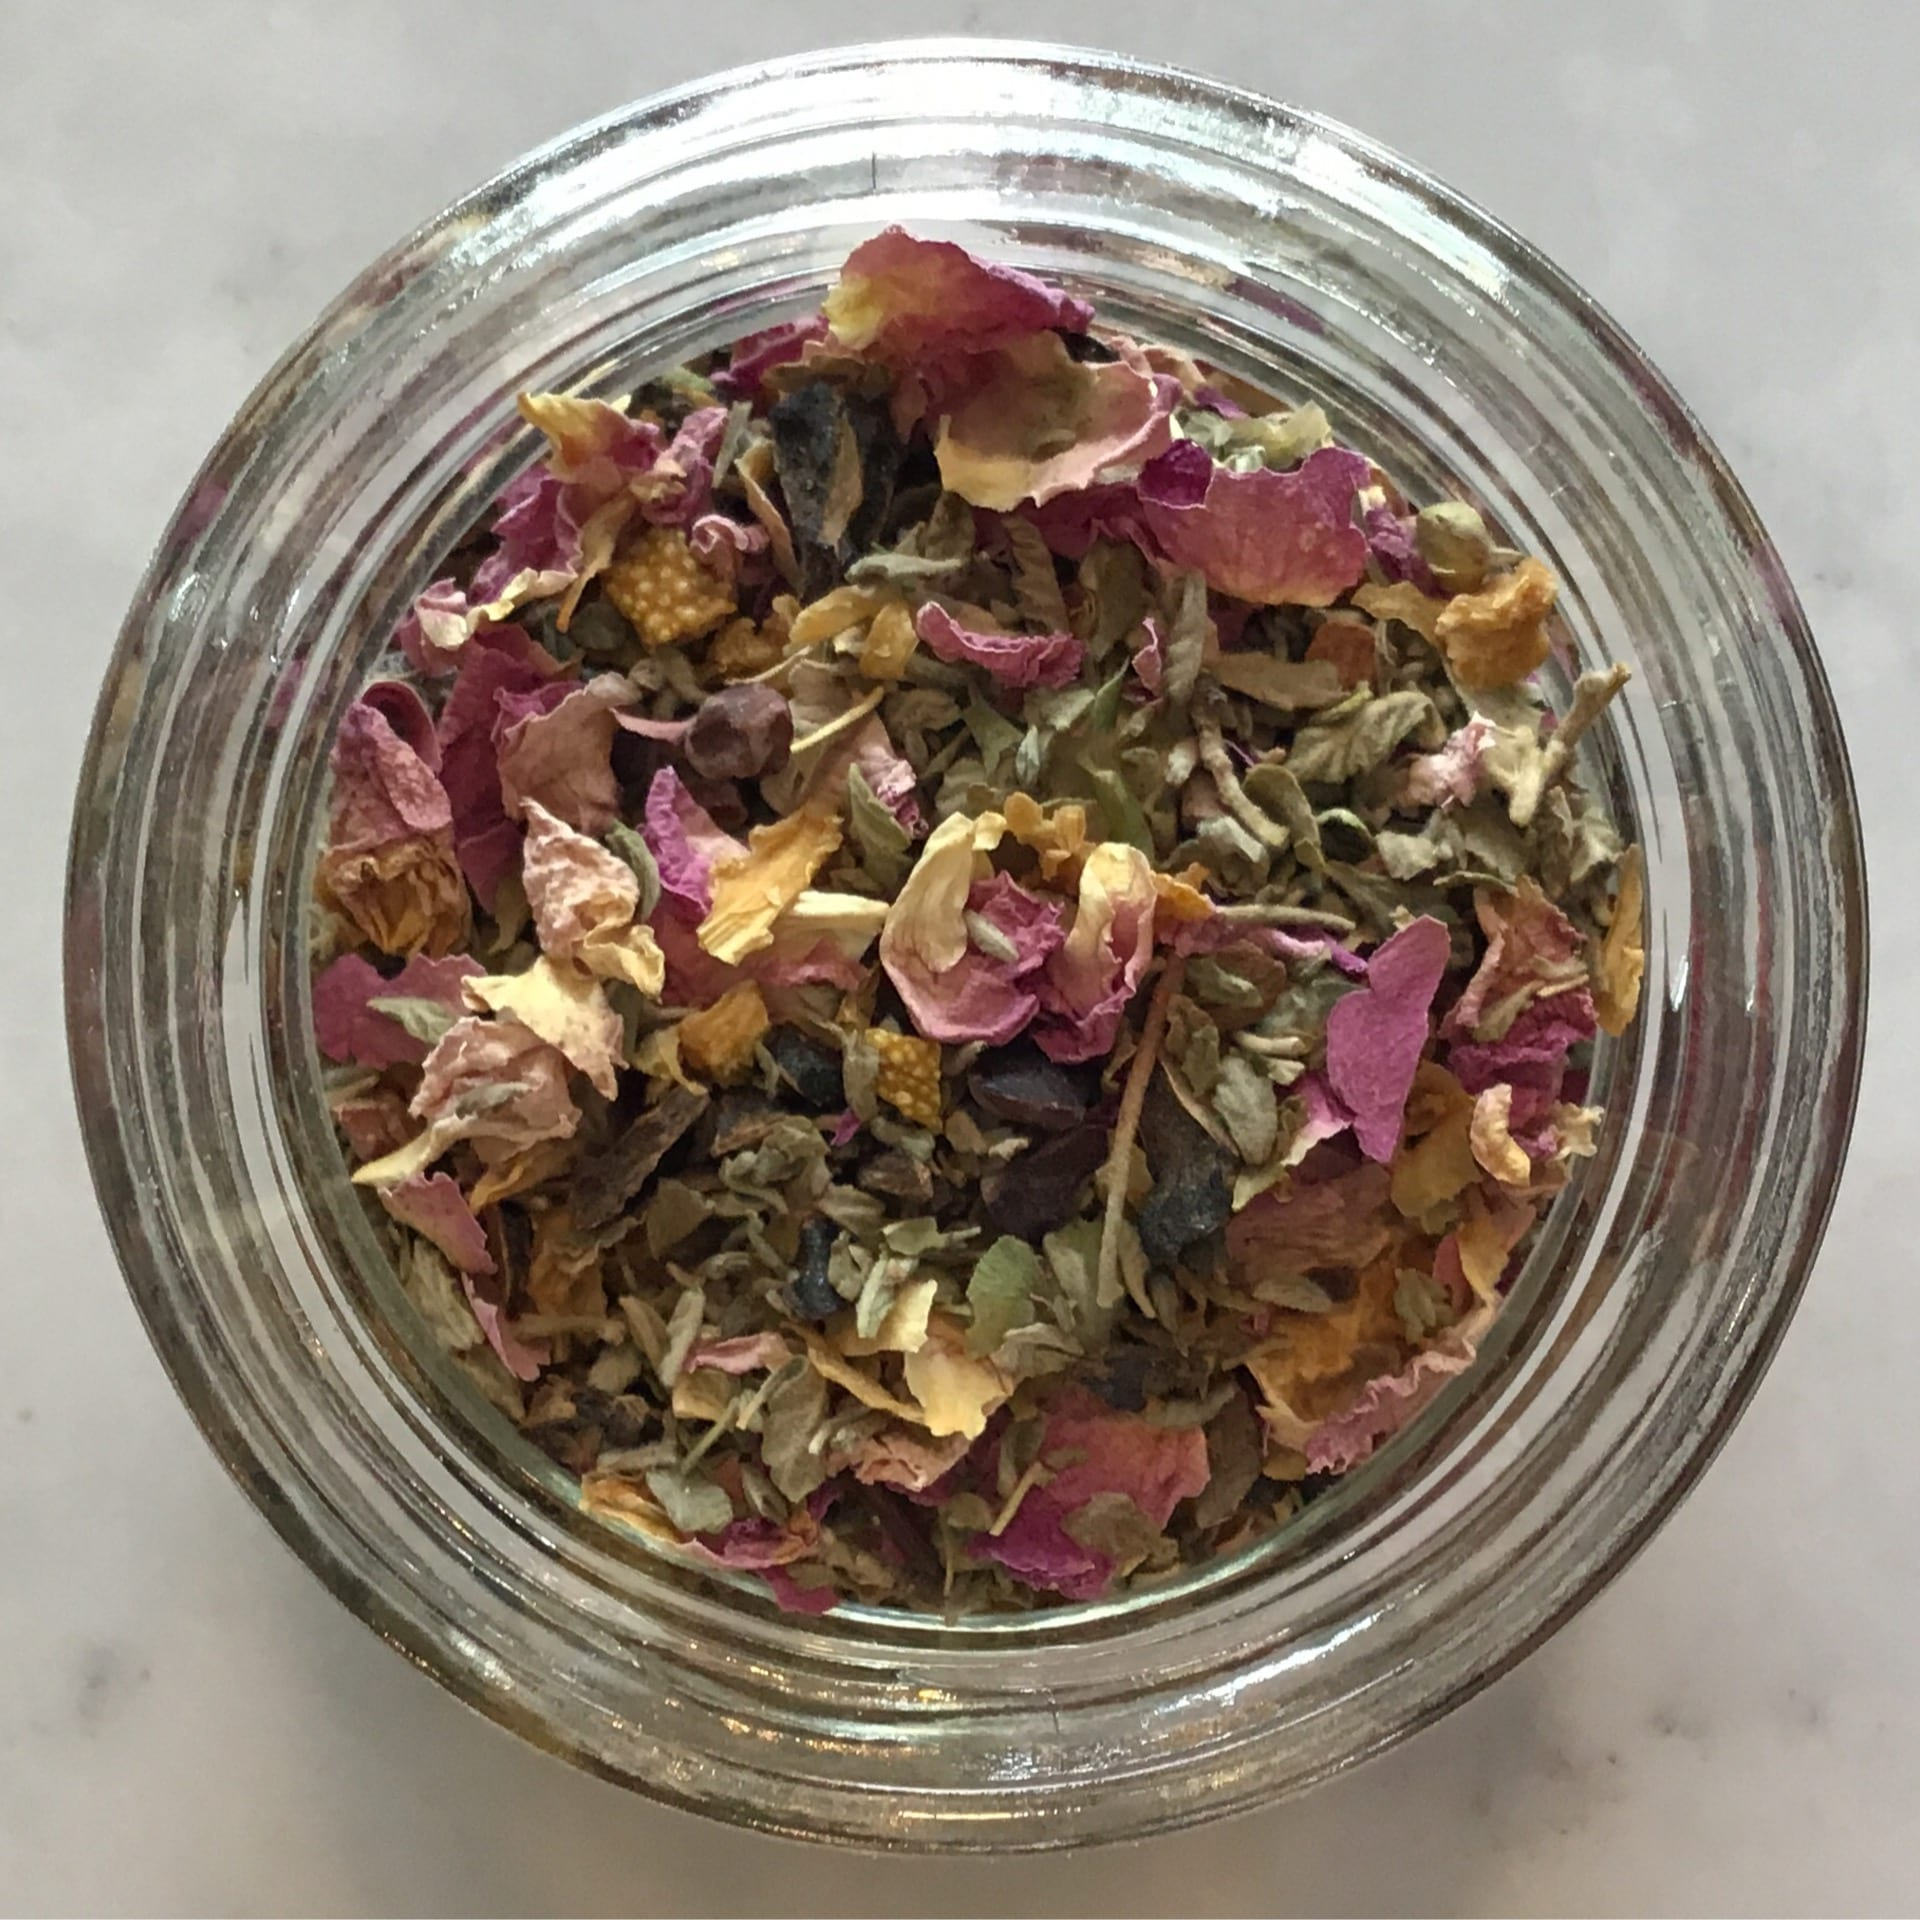 The perfect tea blend for valentines day - sweet and floral